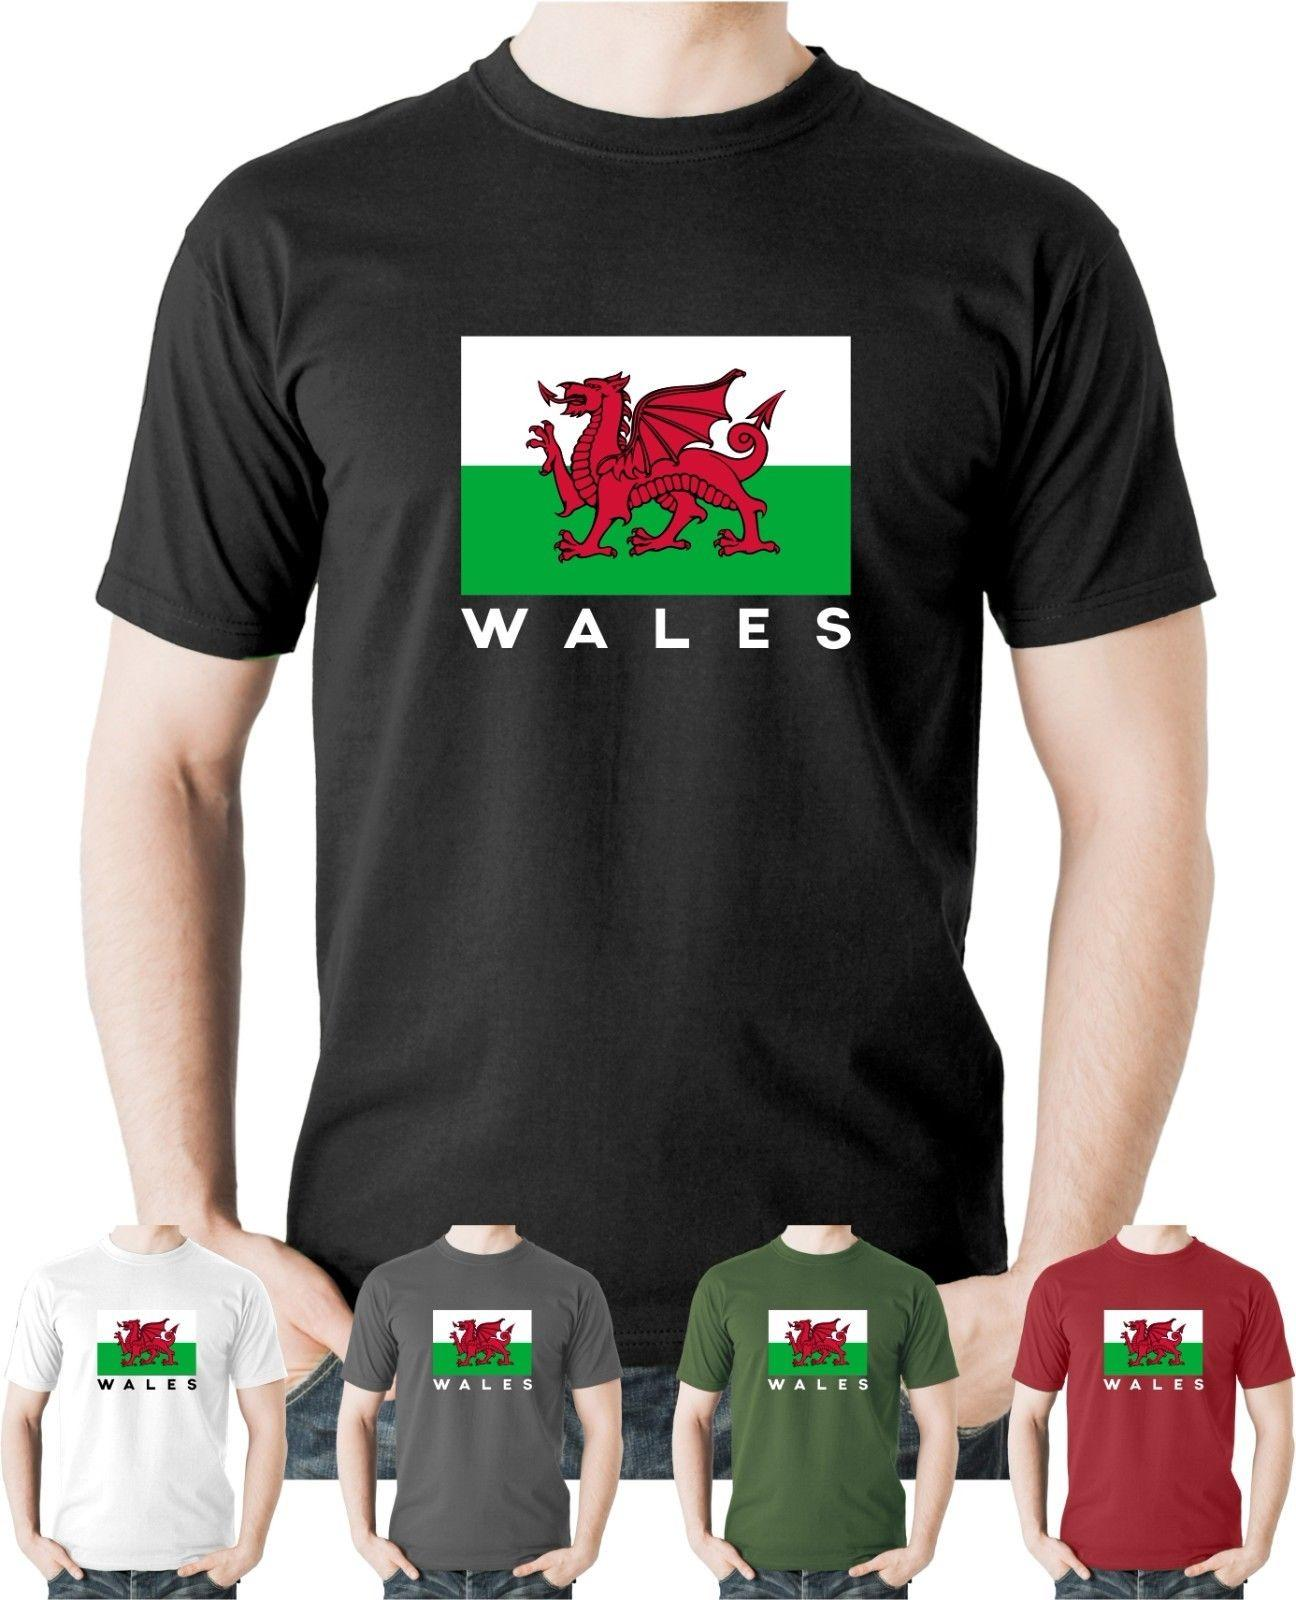 601fc81564d Wales Cymru Nations T Shirt World Cup Welsh Flag Football Rugby Cotton Tee  UKFunny Unisex Tee Tee Shirt Funny Tee Shirt Designers From Topclassaa, ...